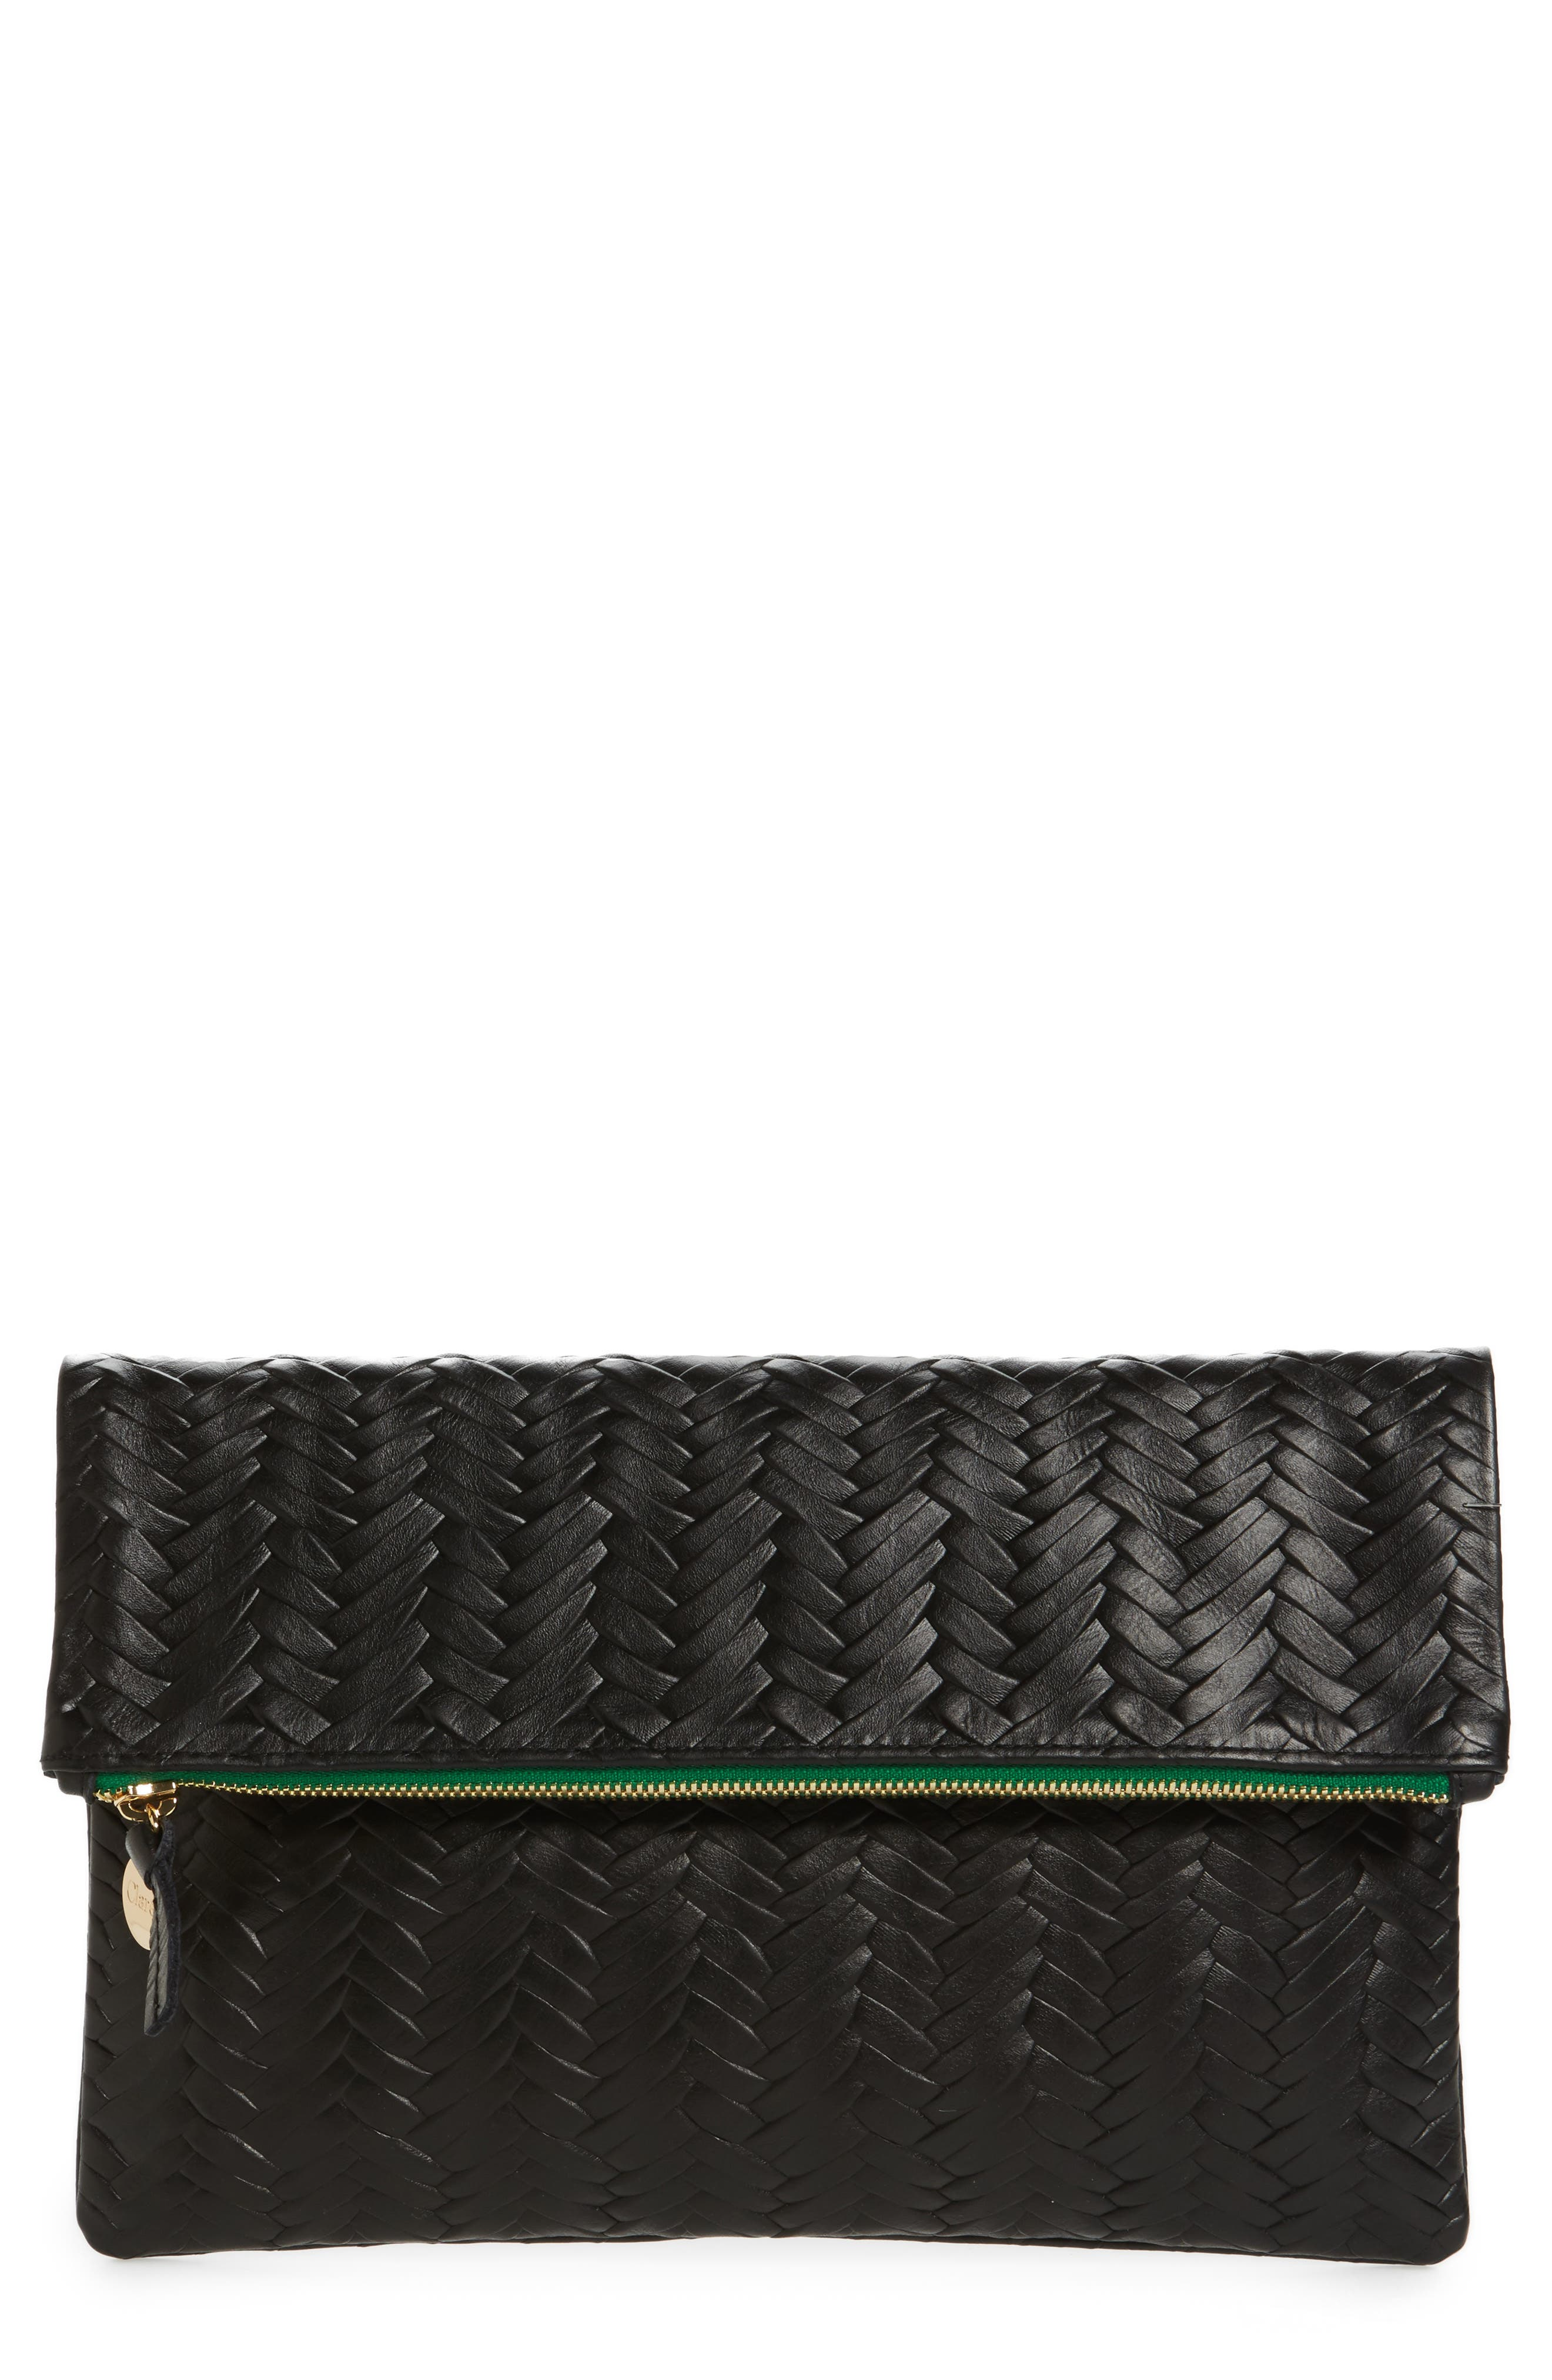 Clare V. Woven Leather Clutch